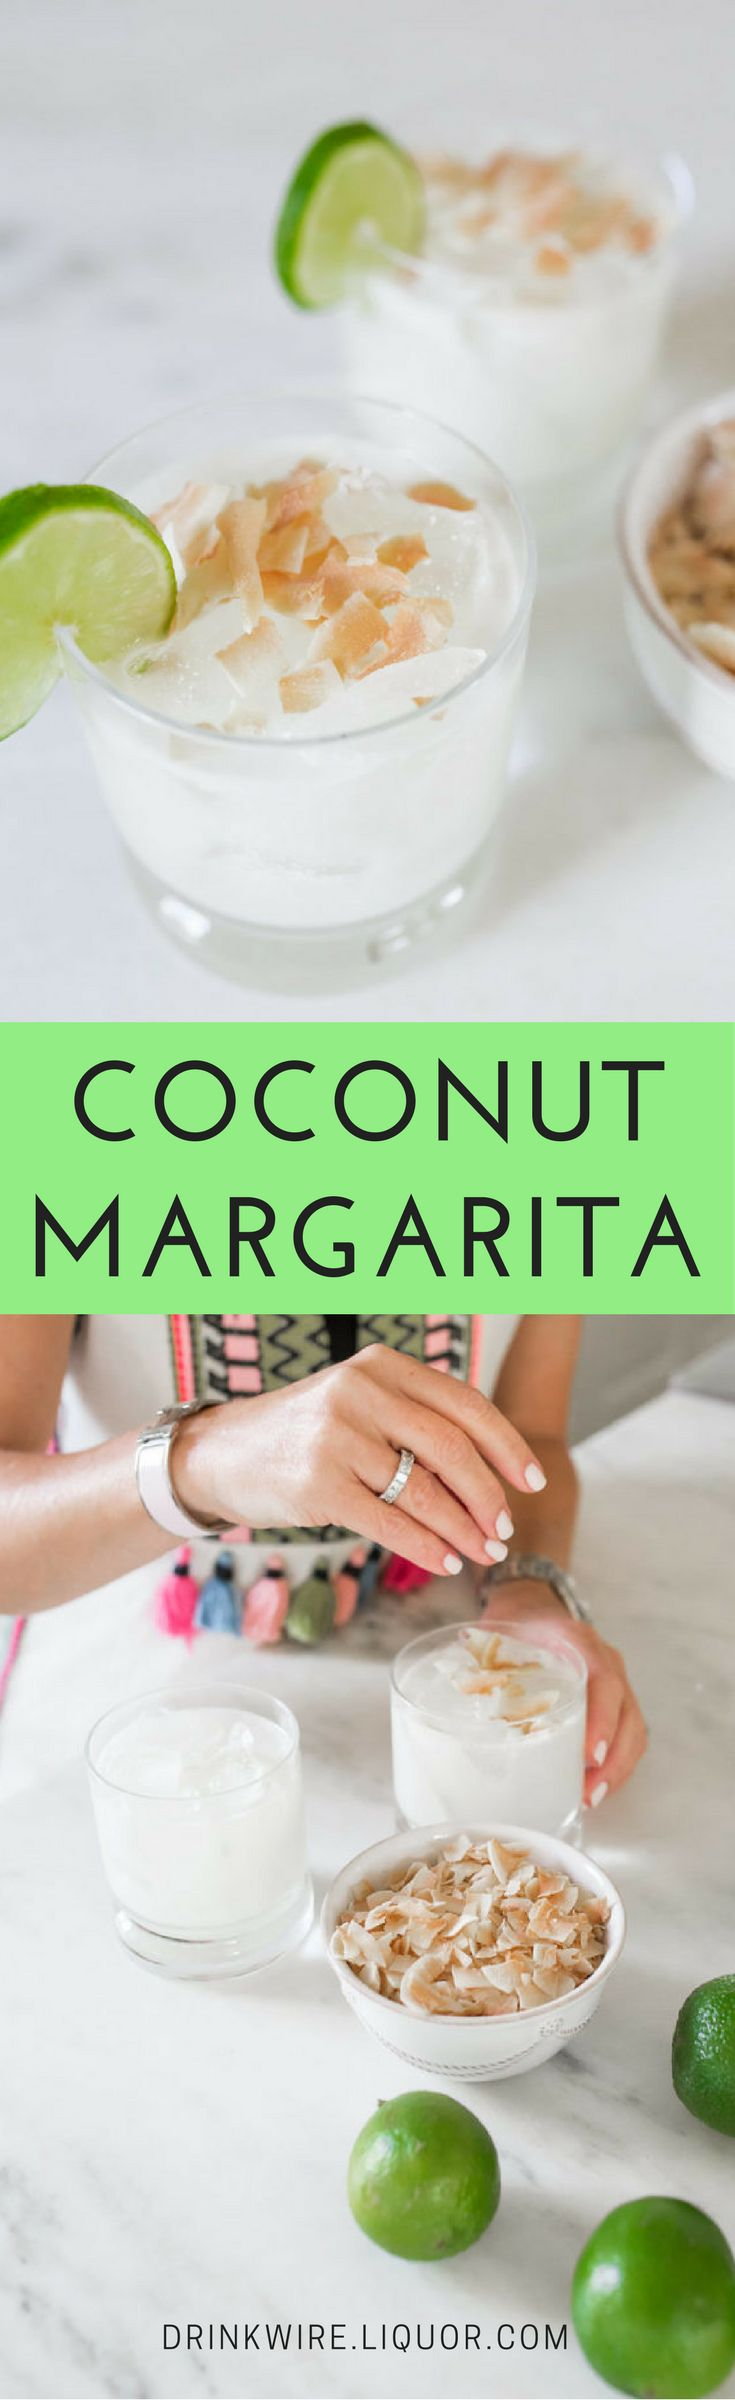 The Coconut Margarita is the cool, creamy, refreshing cocktail that you didn't know you needed! Coconut cream and coconut water (delicious and healthy!) add an extra tropical flavor the the time-standing classic.